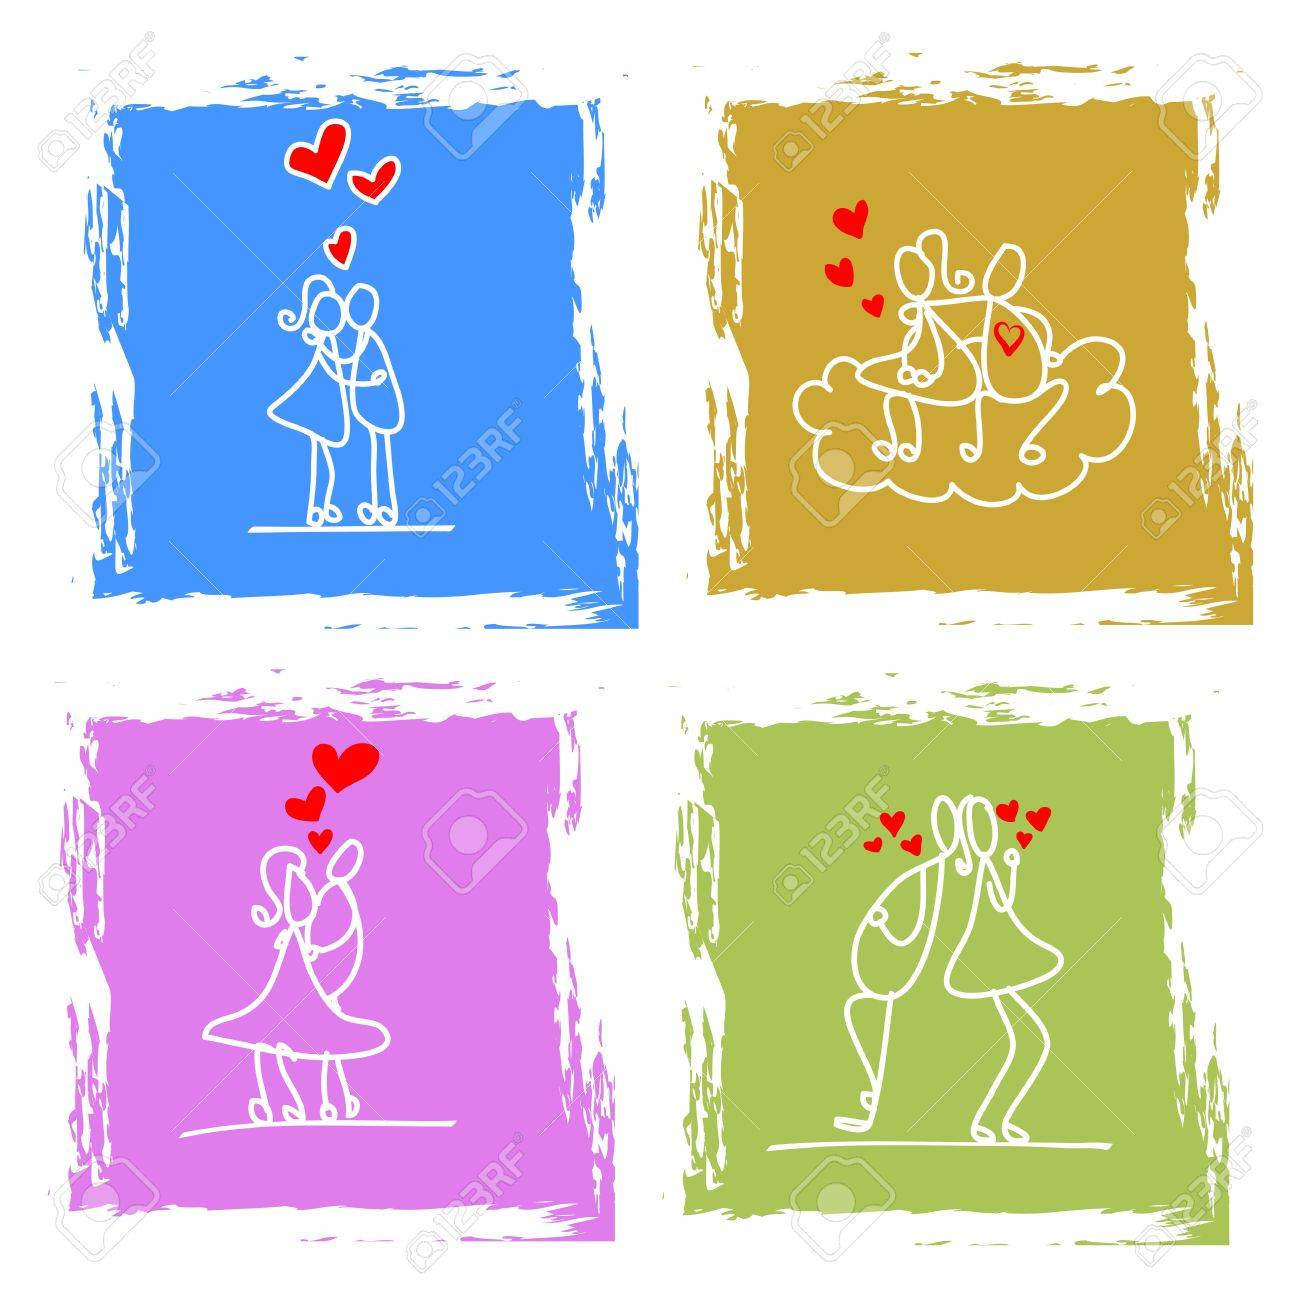 hand-drawn character love couple illustration Stock Vector - 17875841